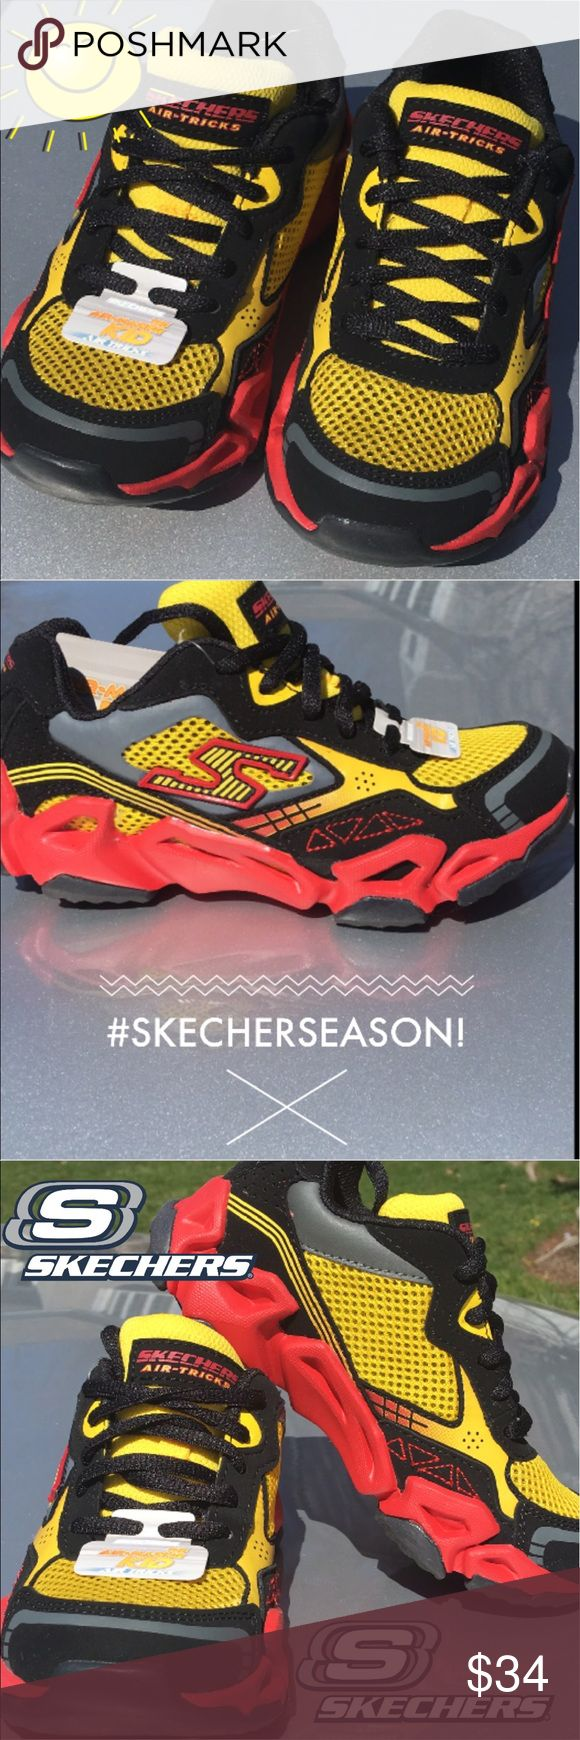 New Skechers Sneakers for Boys! New Skechers Sneaker for Boys last Pair sale size 13....was $54 now only $34... 😊😊😊 Skechers Shoes Sneakers